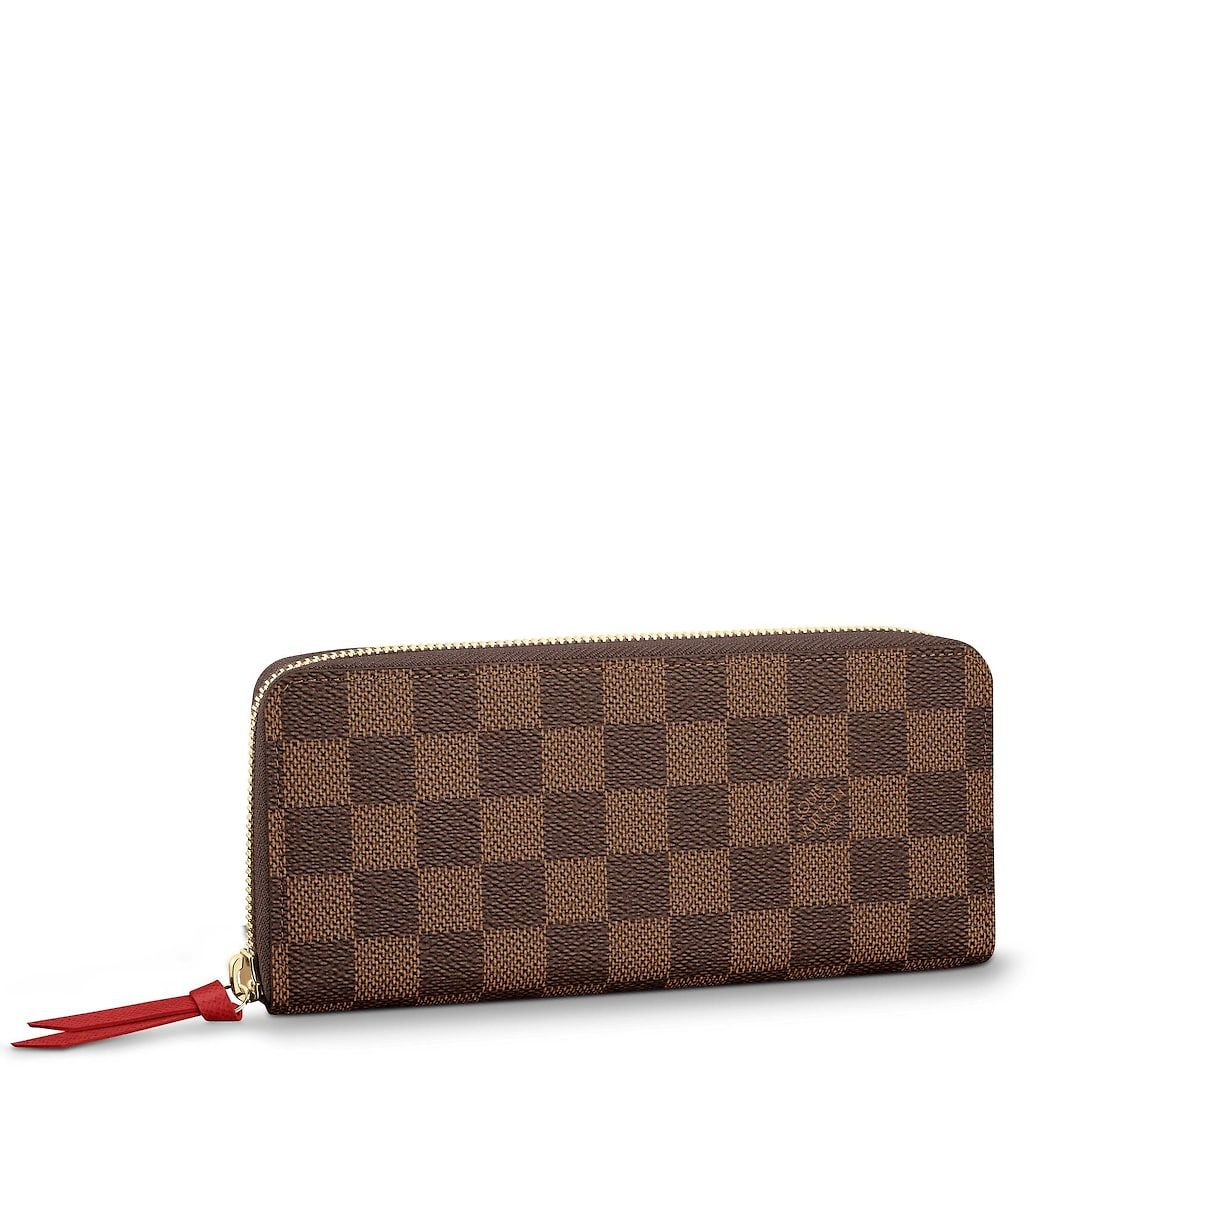 a55306832a63b Clémence Wallet Damier Ebene - Small Leather Goods